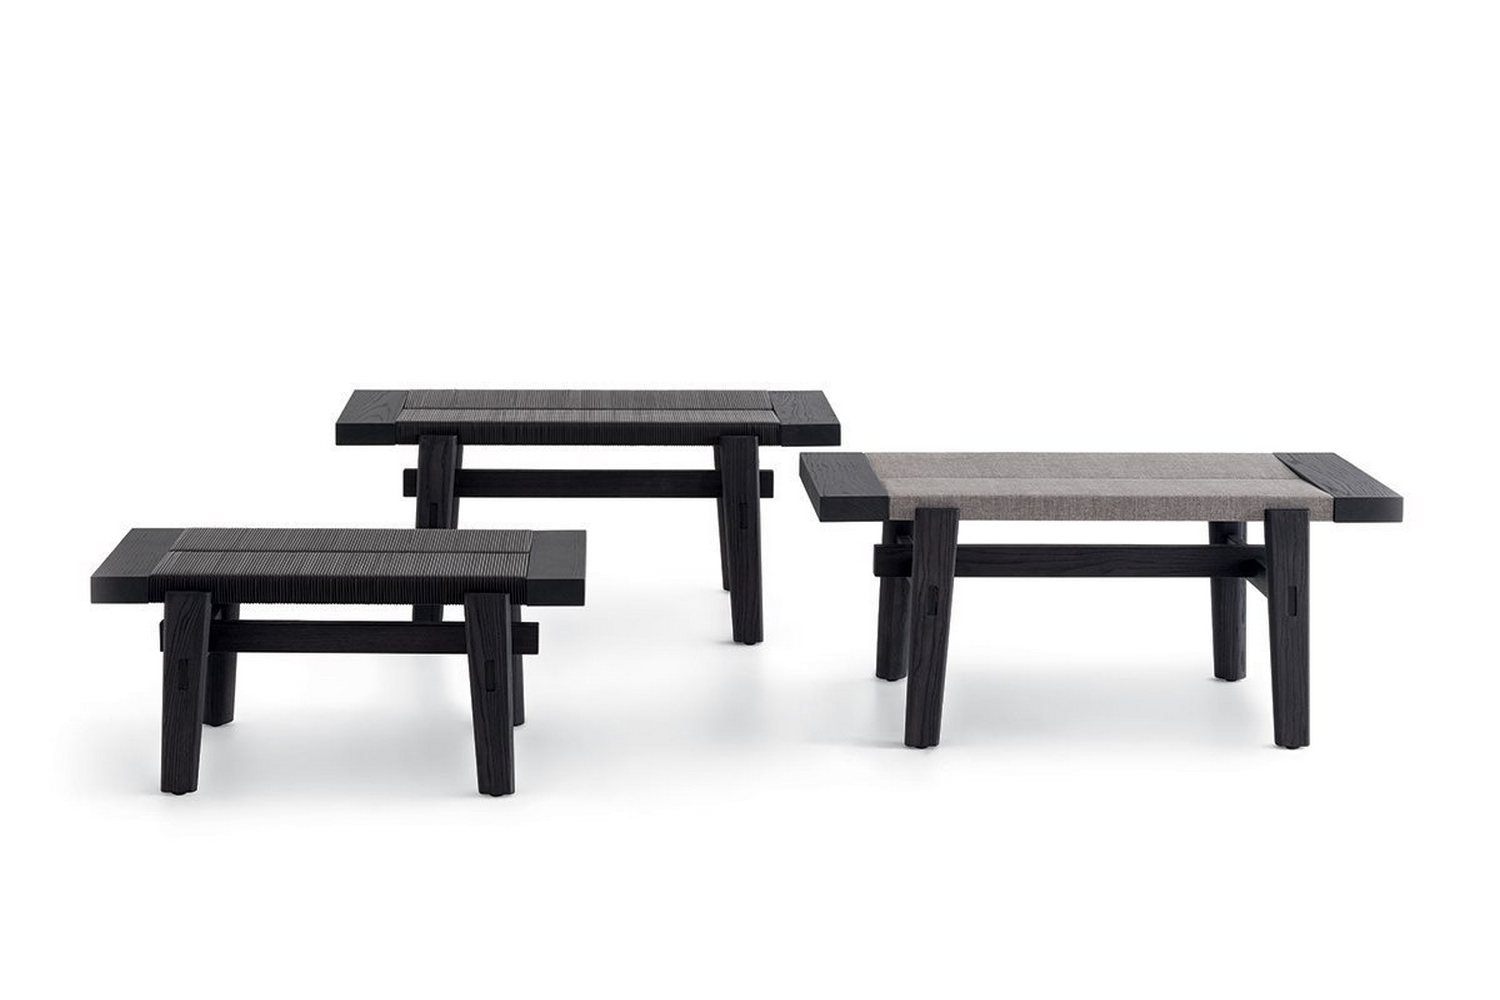 Home Hotel Bench by Jean-Marie Massaud for Poliform